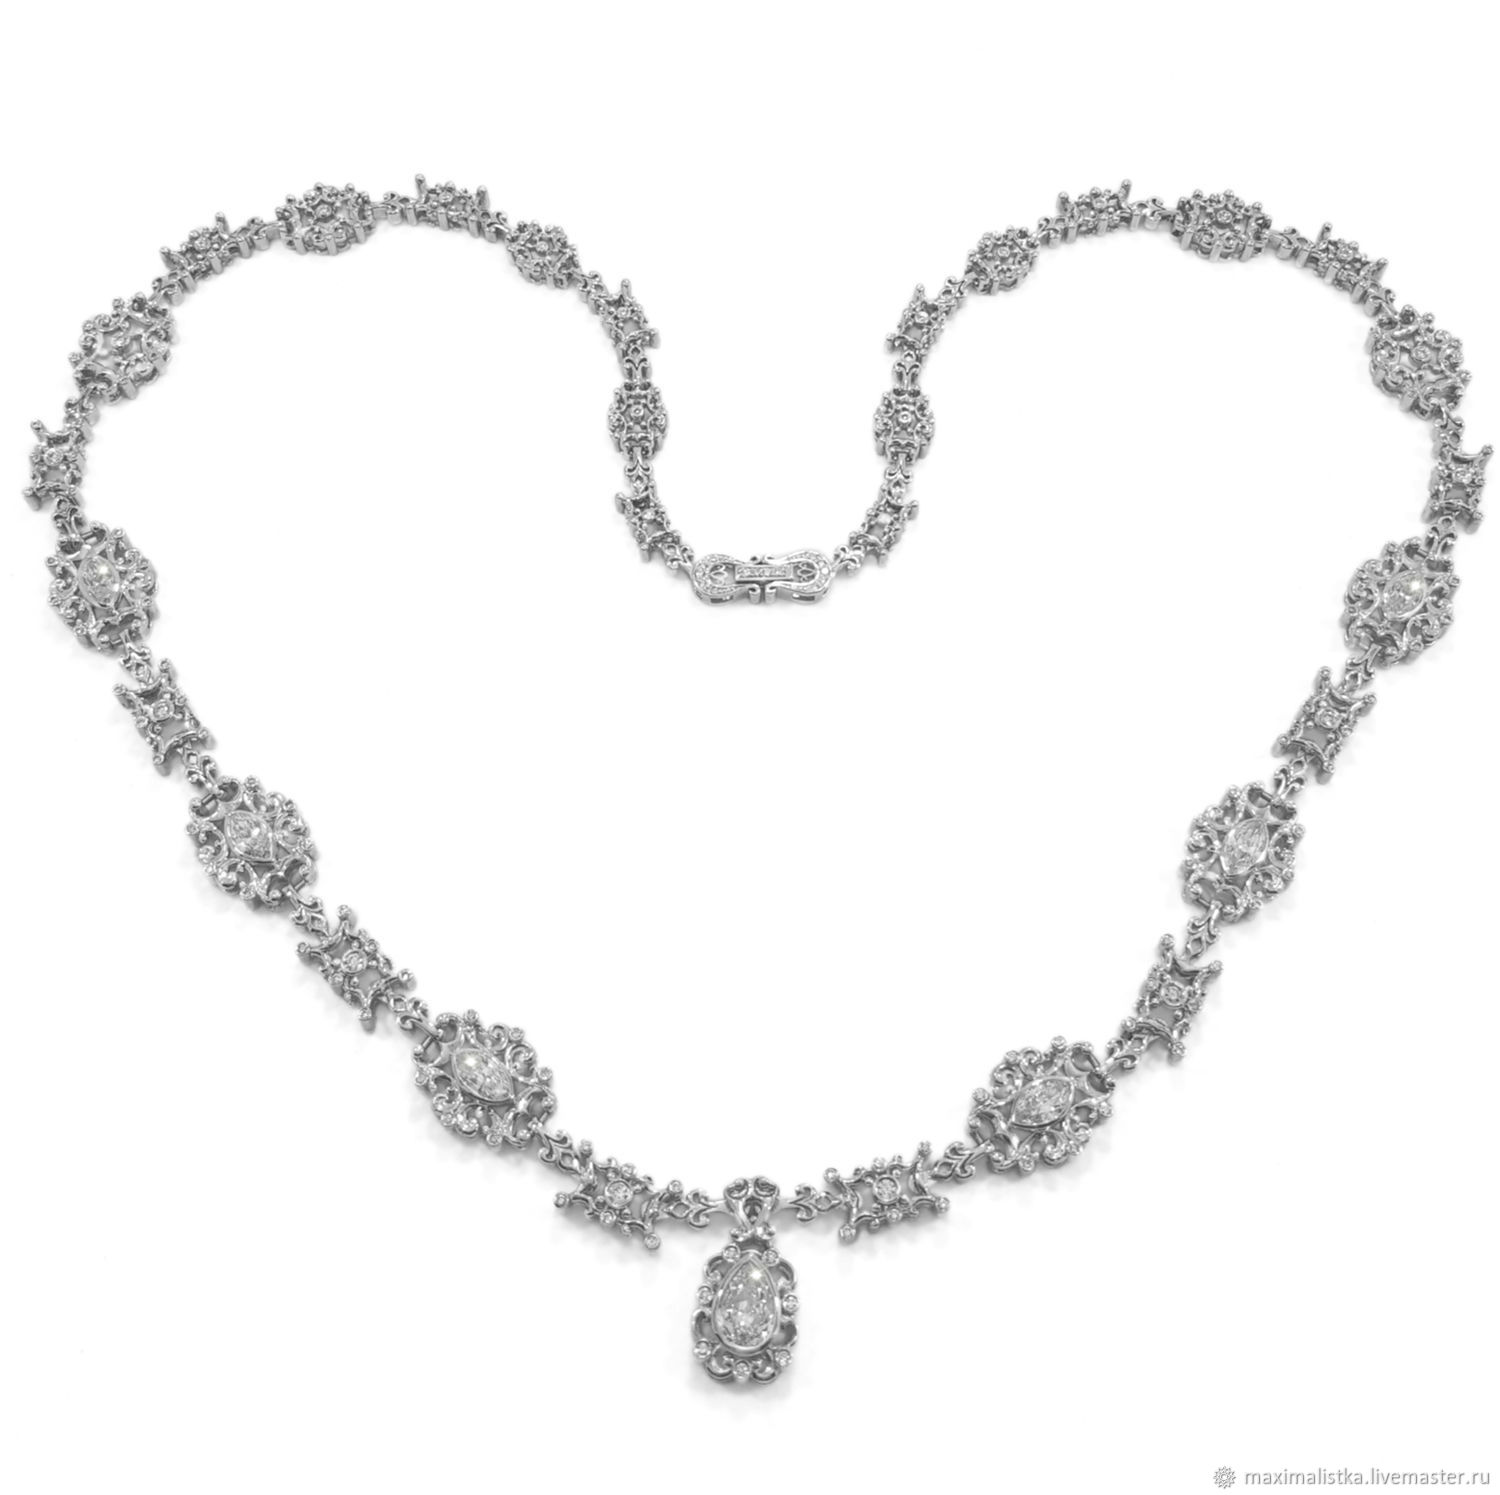 Diamond necklace 'Your Grace,' white gold, Necklace, Moscow,  Фото №1